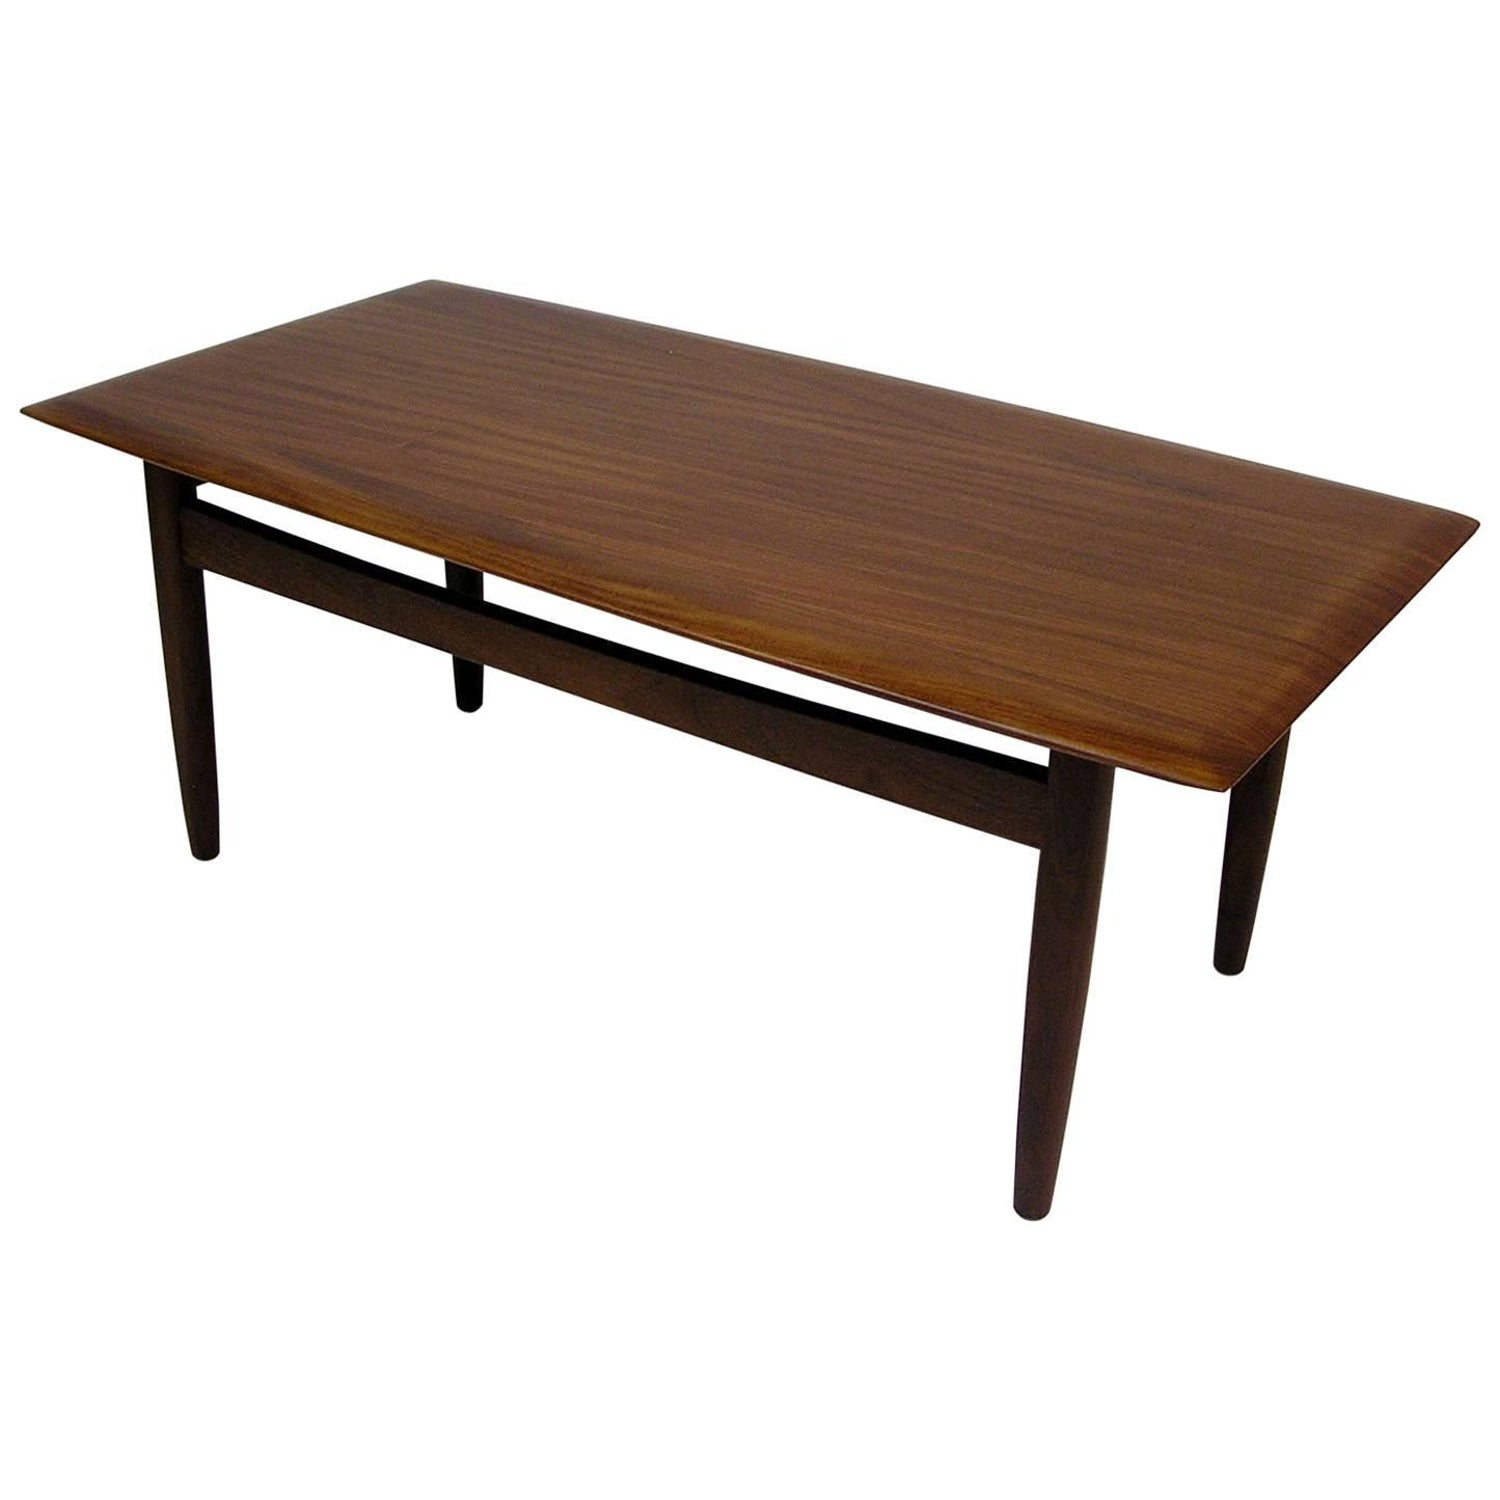 1960s Solid Teak Mid Century Modern Coffee Table by Jan Kuypers